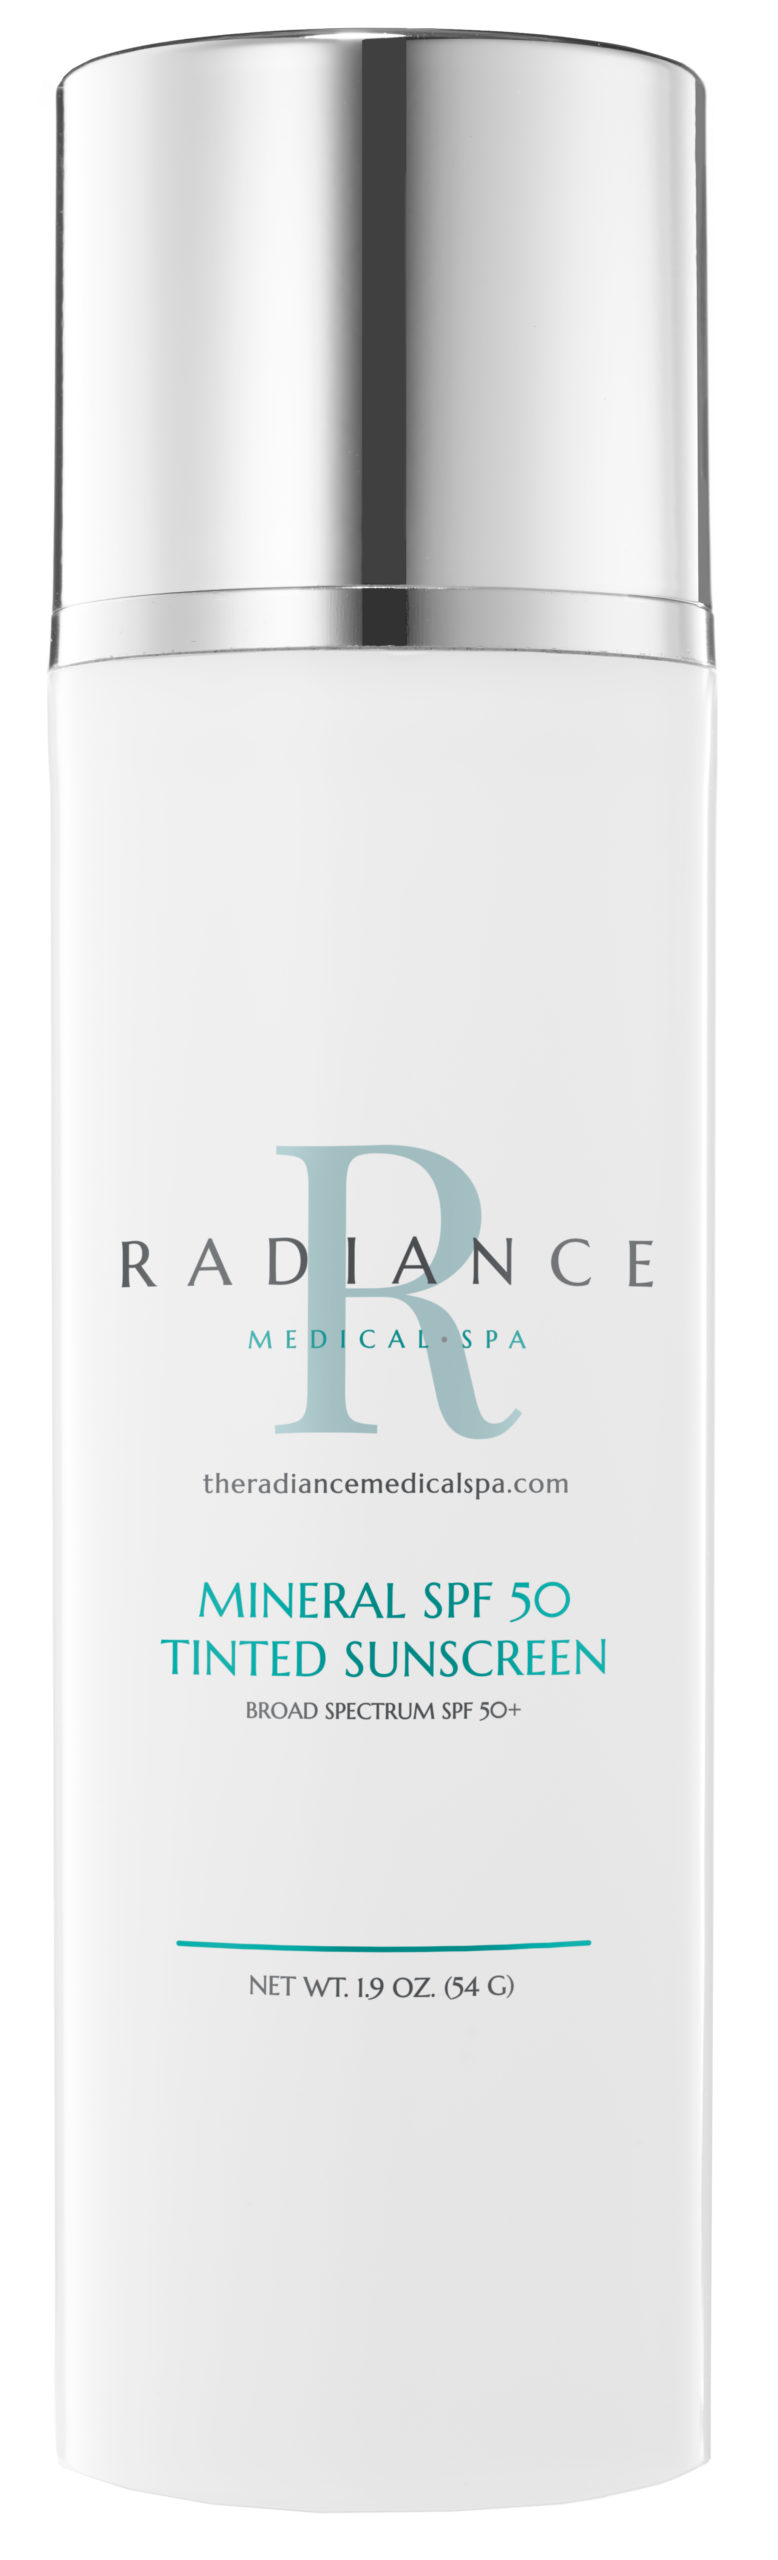 Mineral SPF 50 Tinted